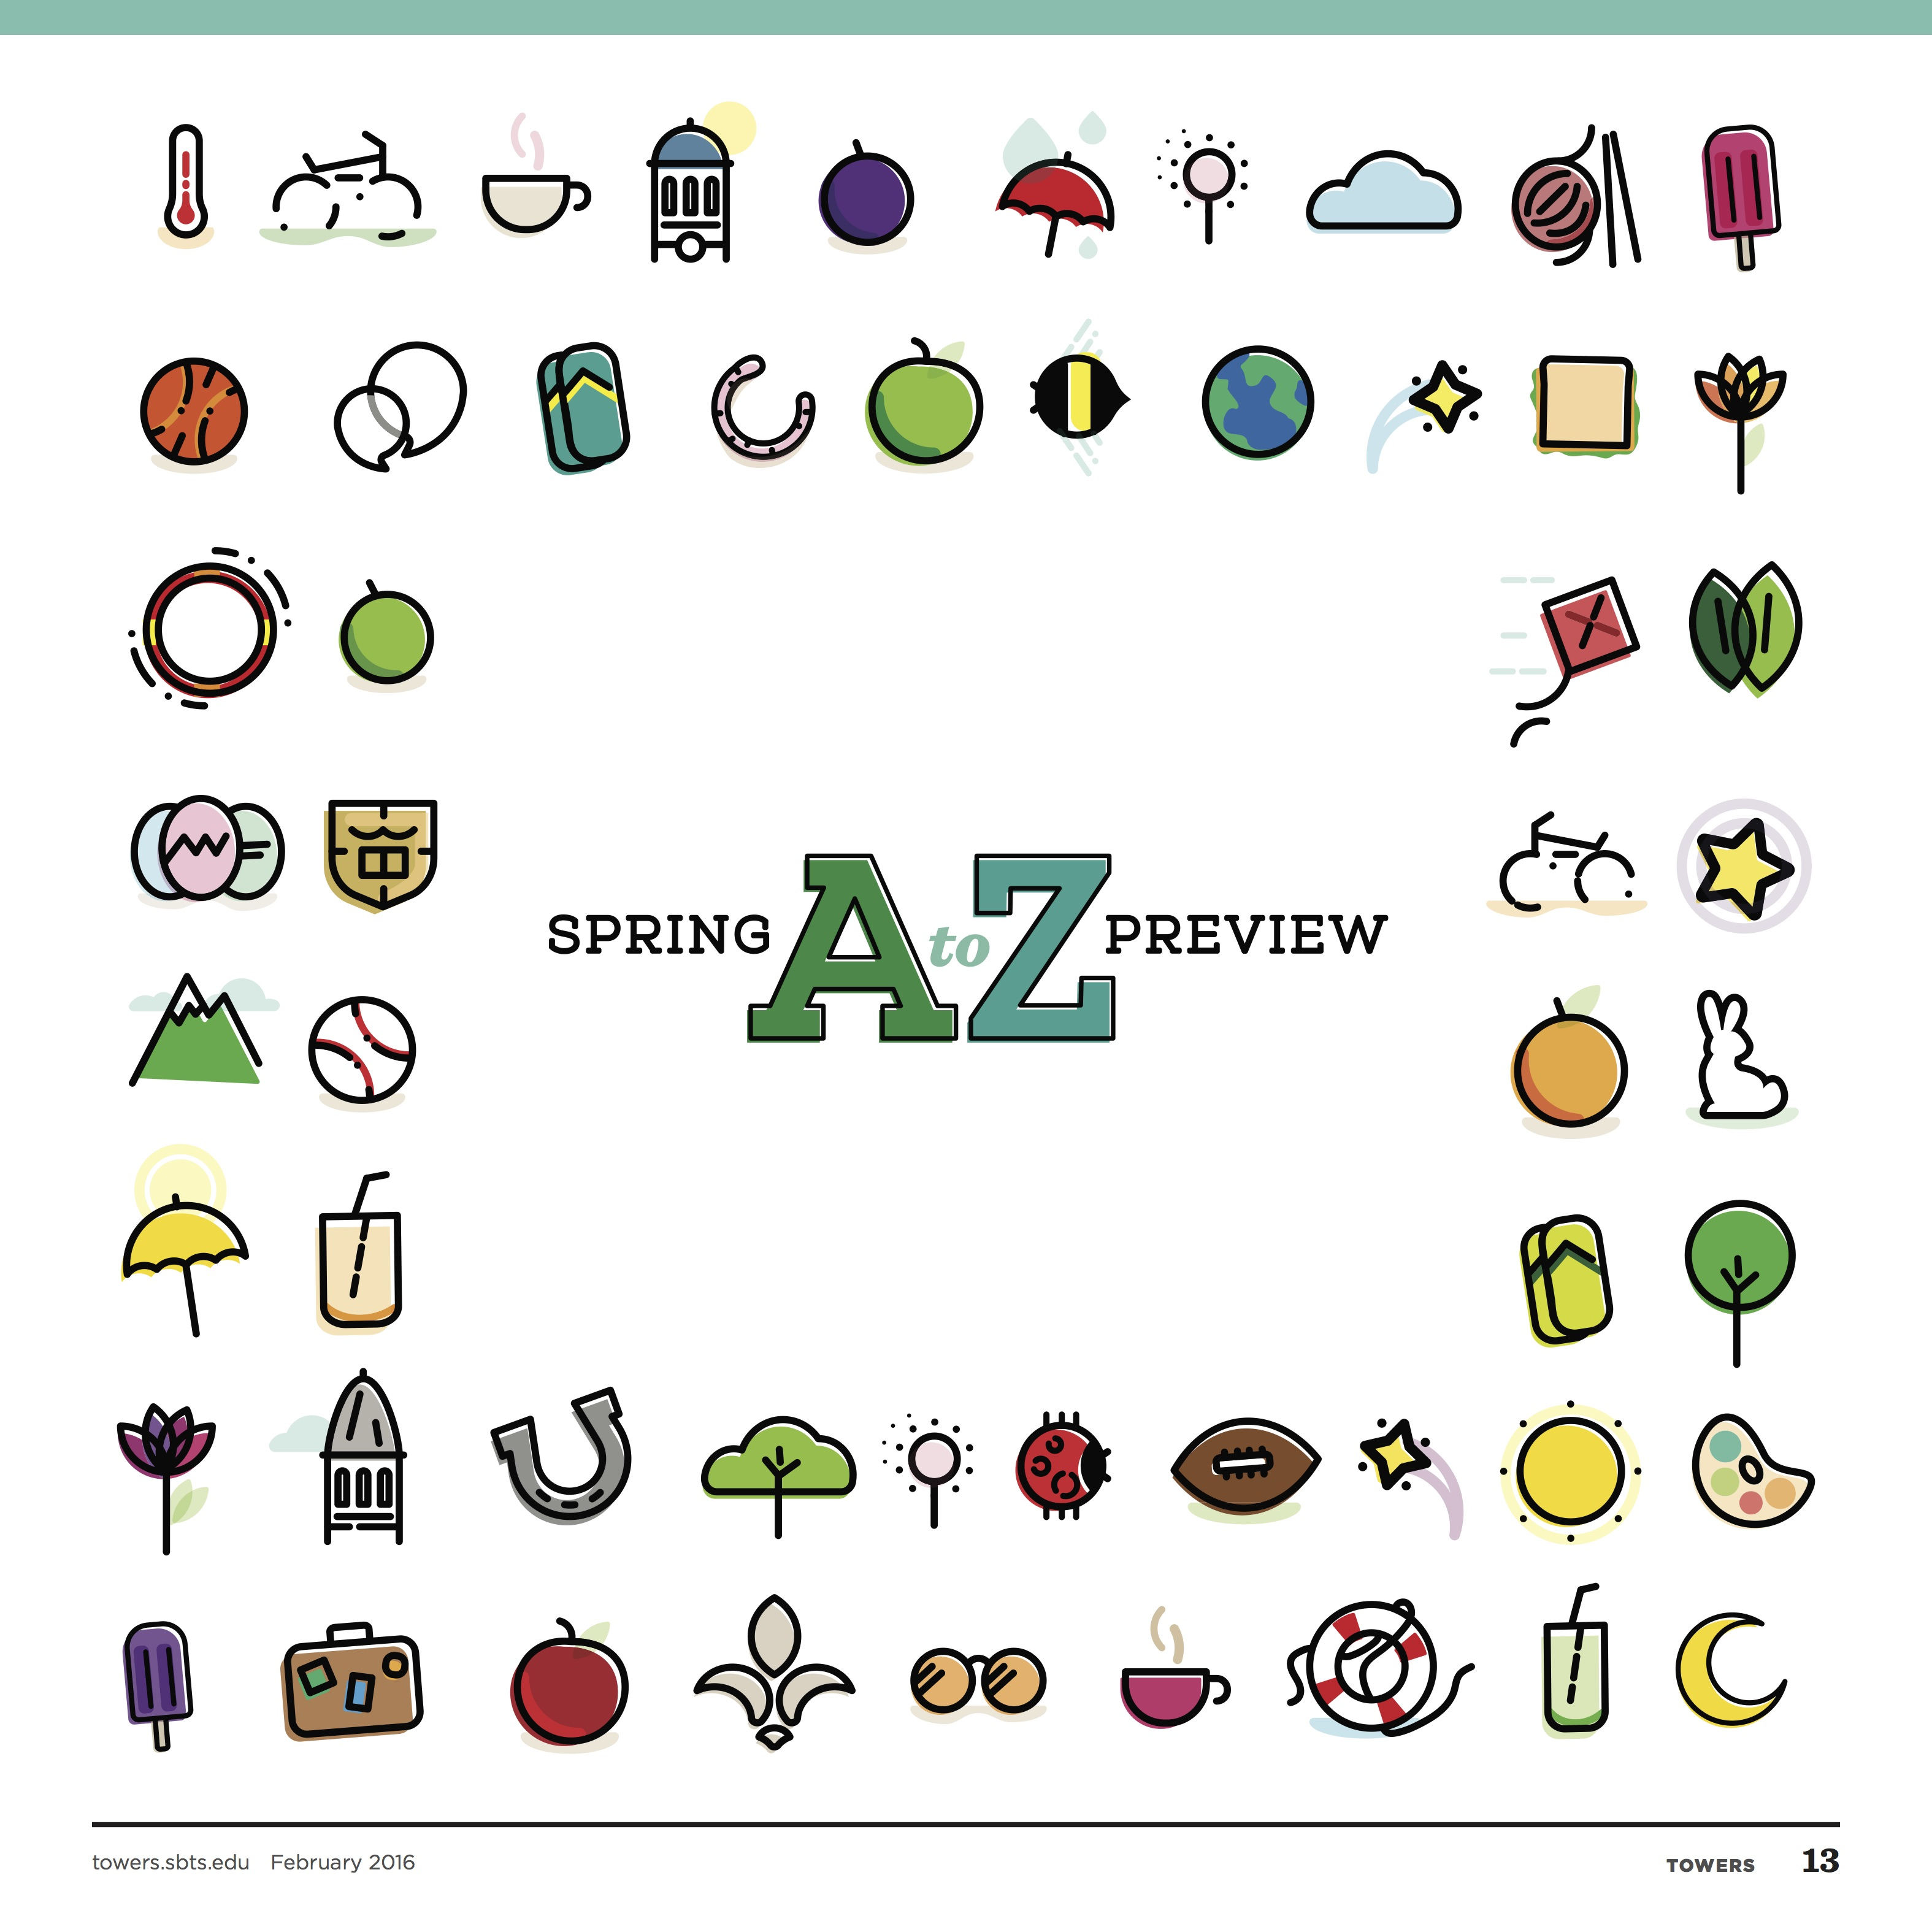 Spring Preview A to Z